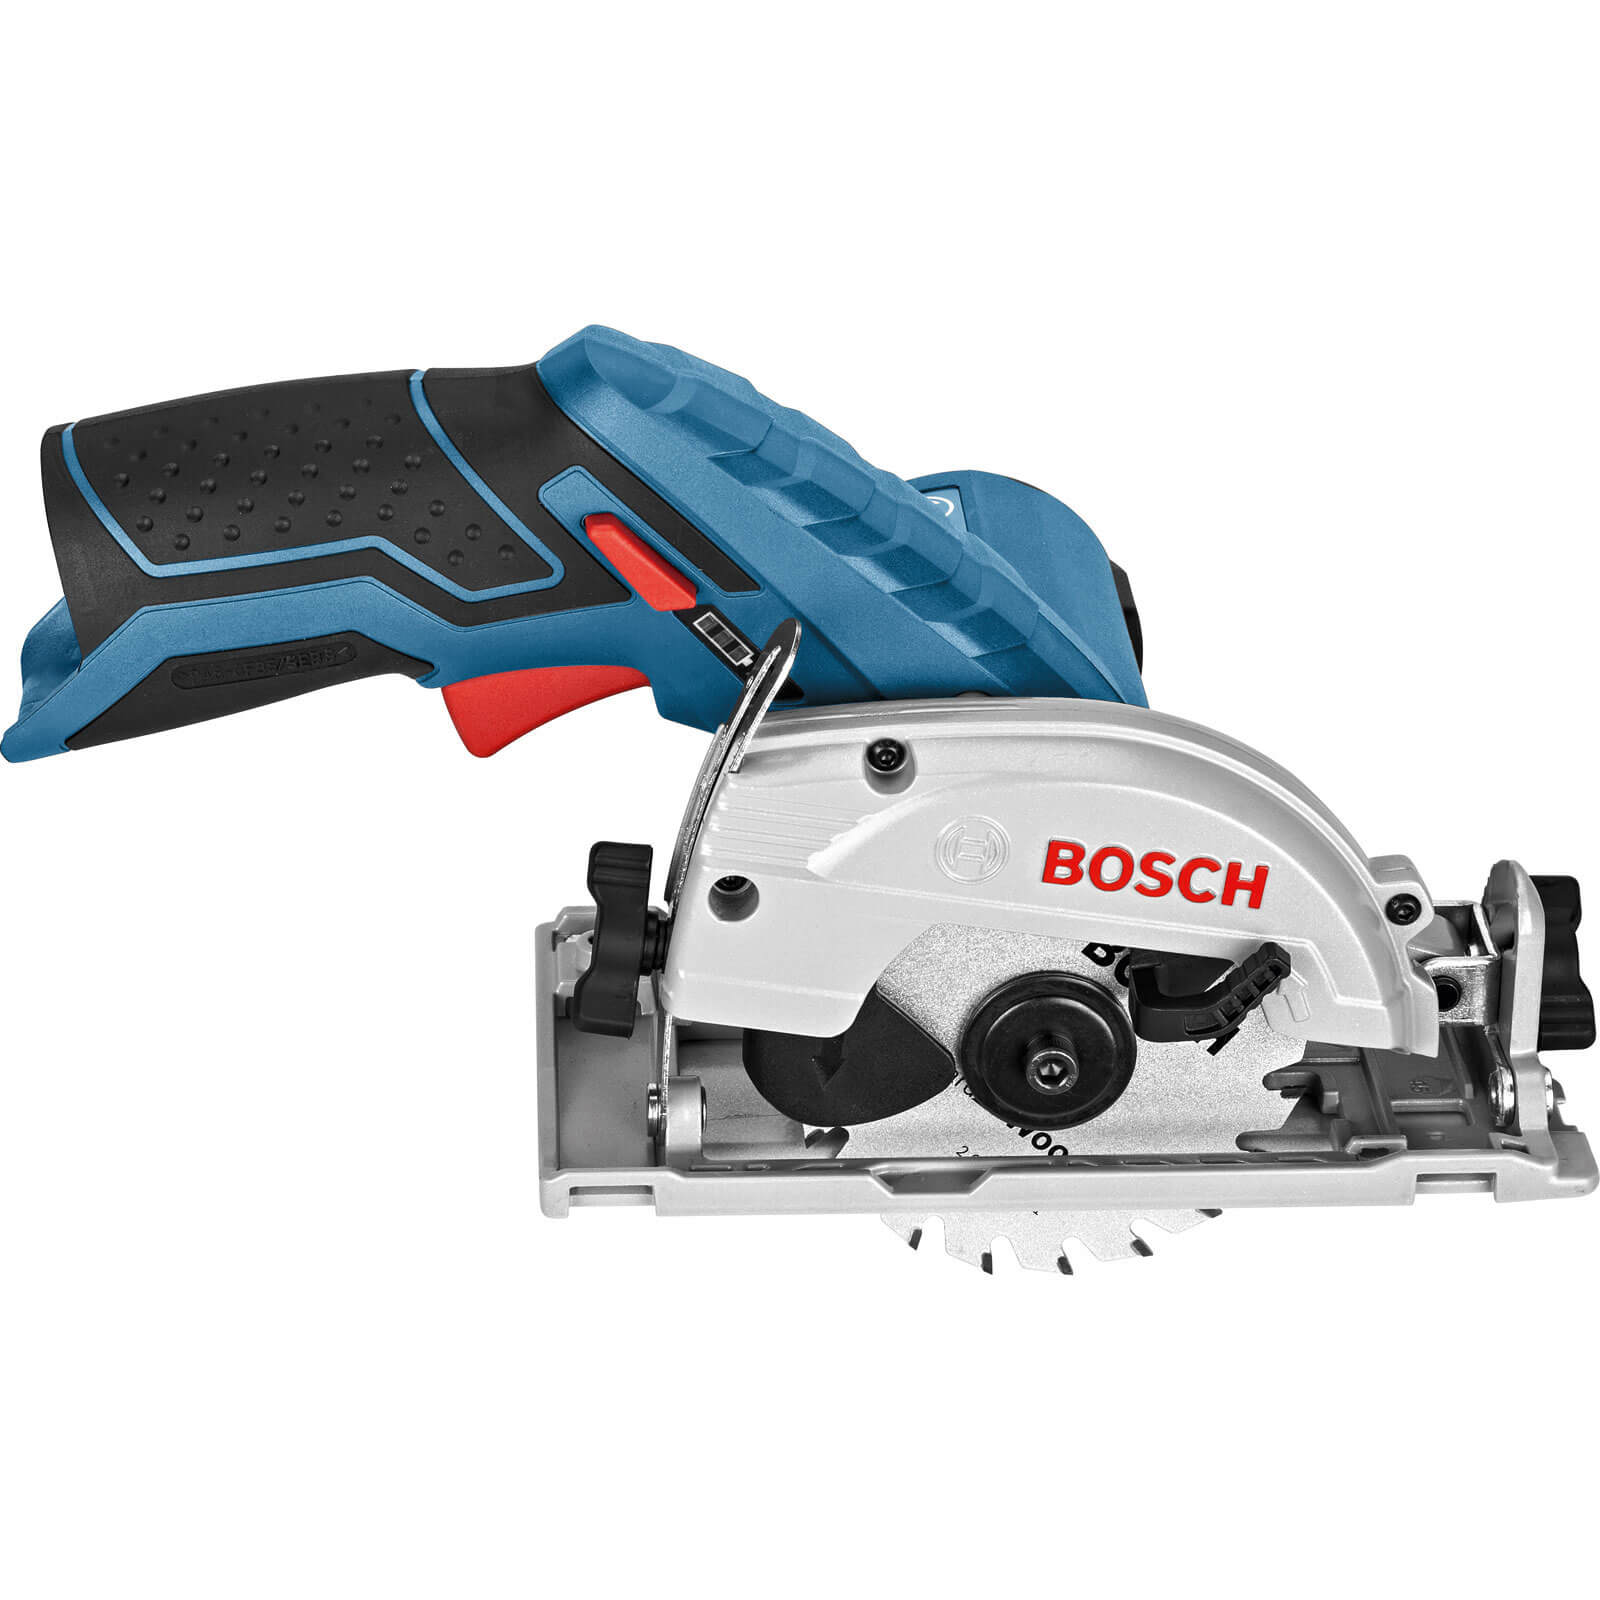 Bosch GKS 10.8 V-LI 10.8v Cordless Circular Saw 85mm Blade without Battery or Charger